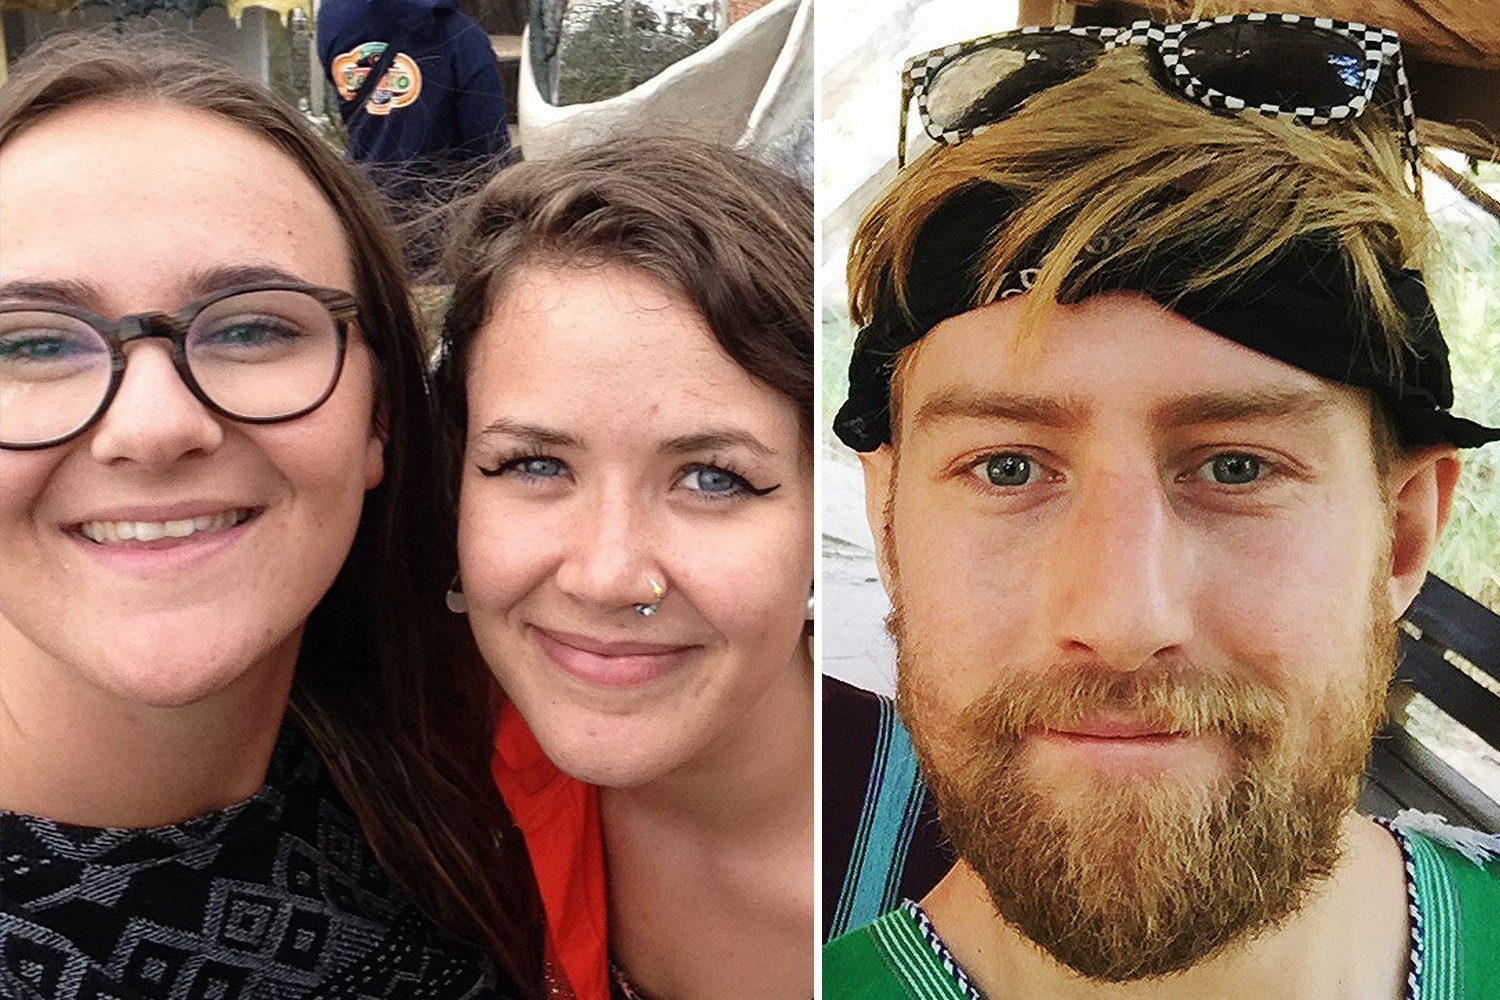 Brit sisters, 19 and 24, and their backpacker pal, 24, swept to their deaths during Vietnam waterfall tour